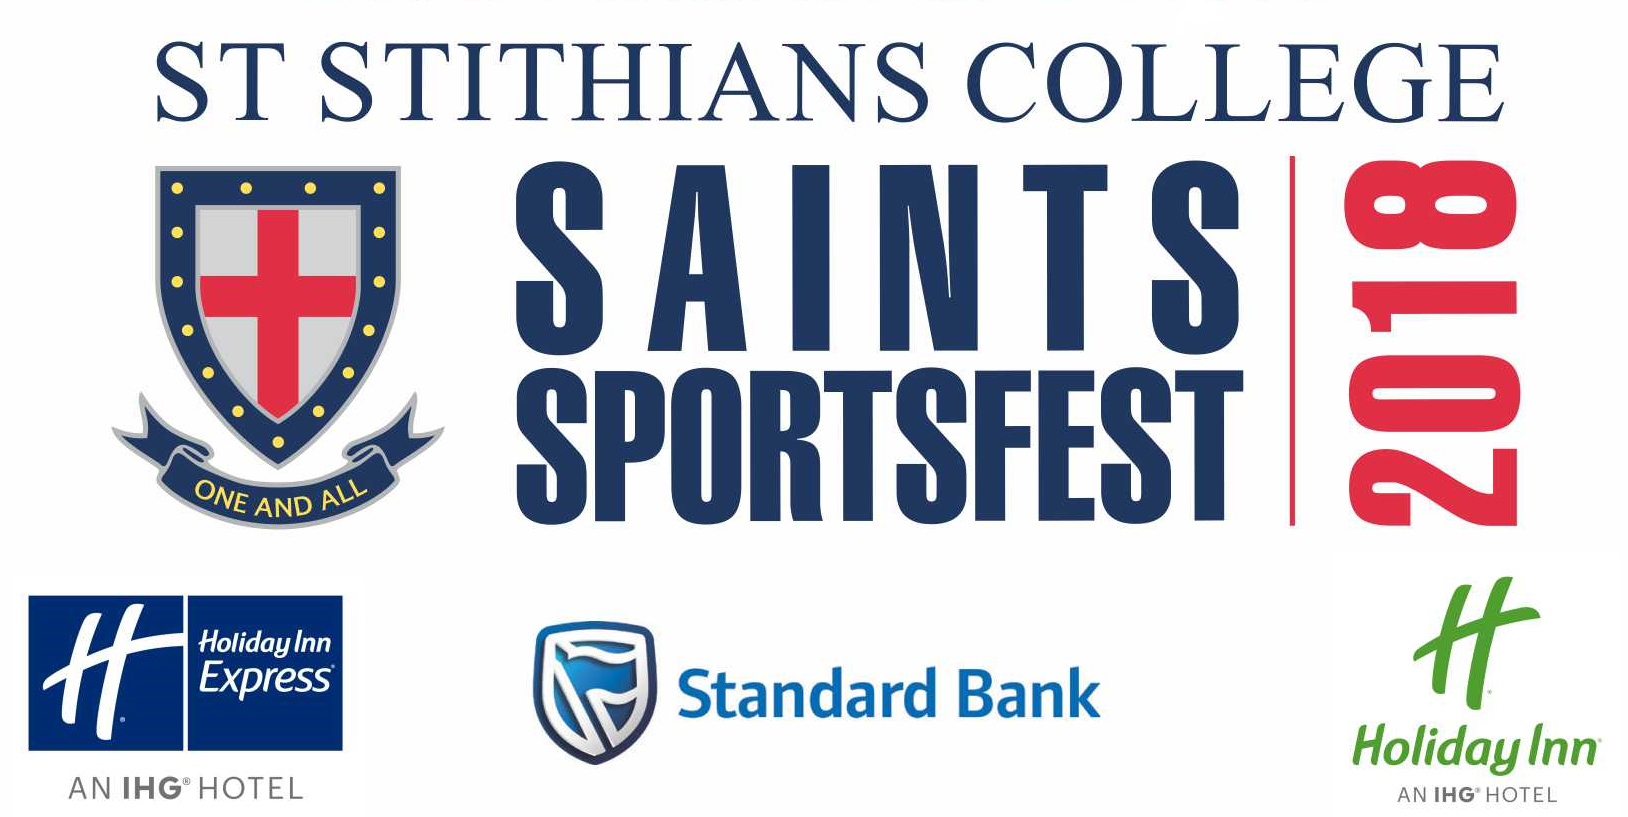 St Stithians Easter Sports Festival Accommodation Special